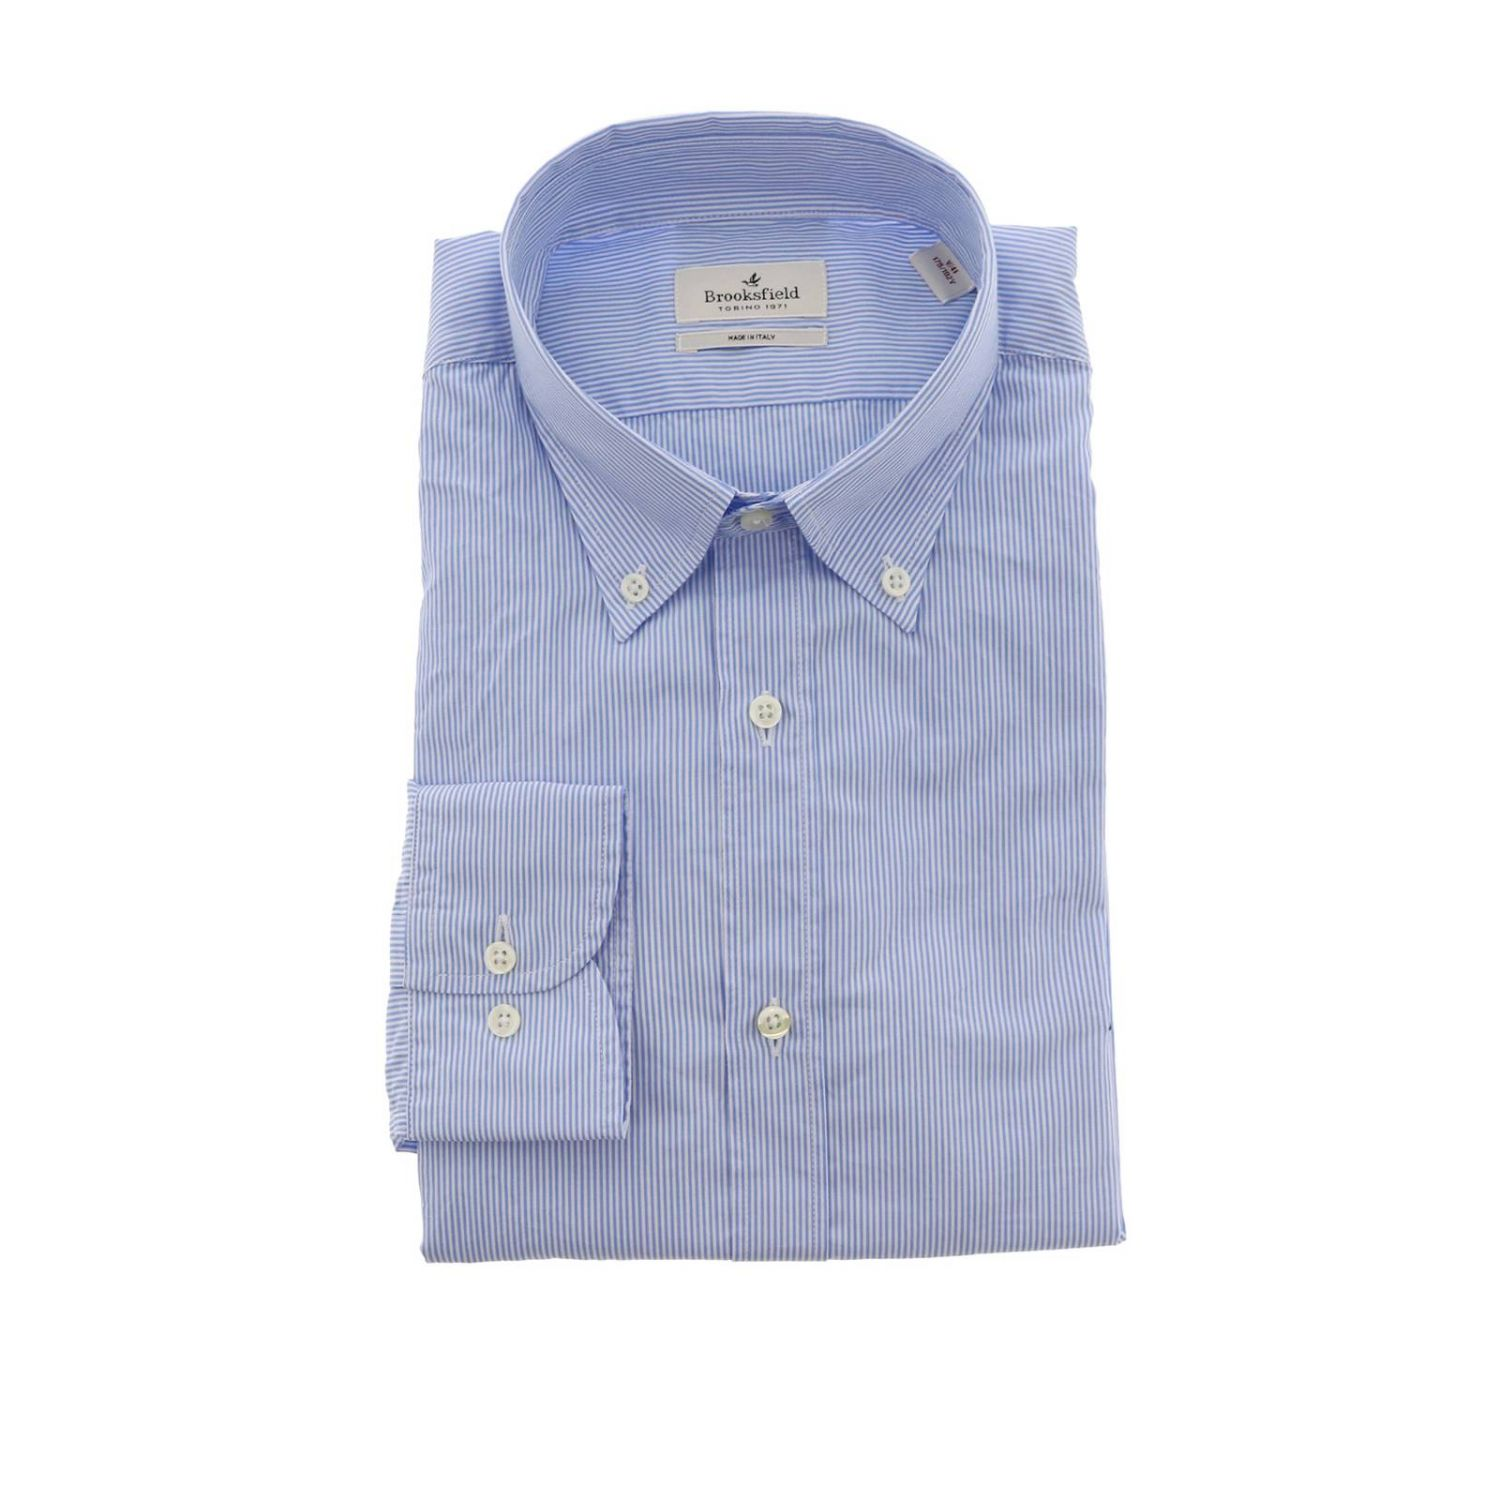 Shirt men Brooksfield gnawed blue 1